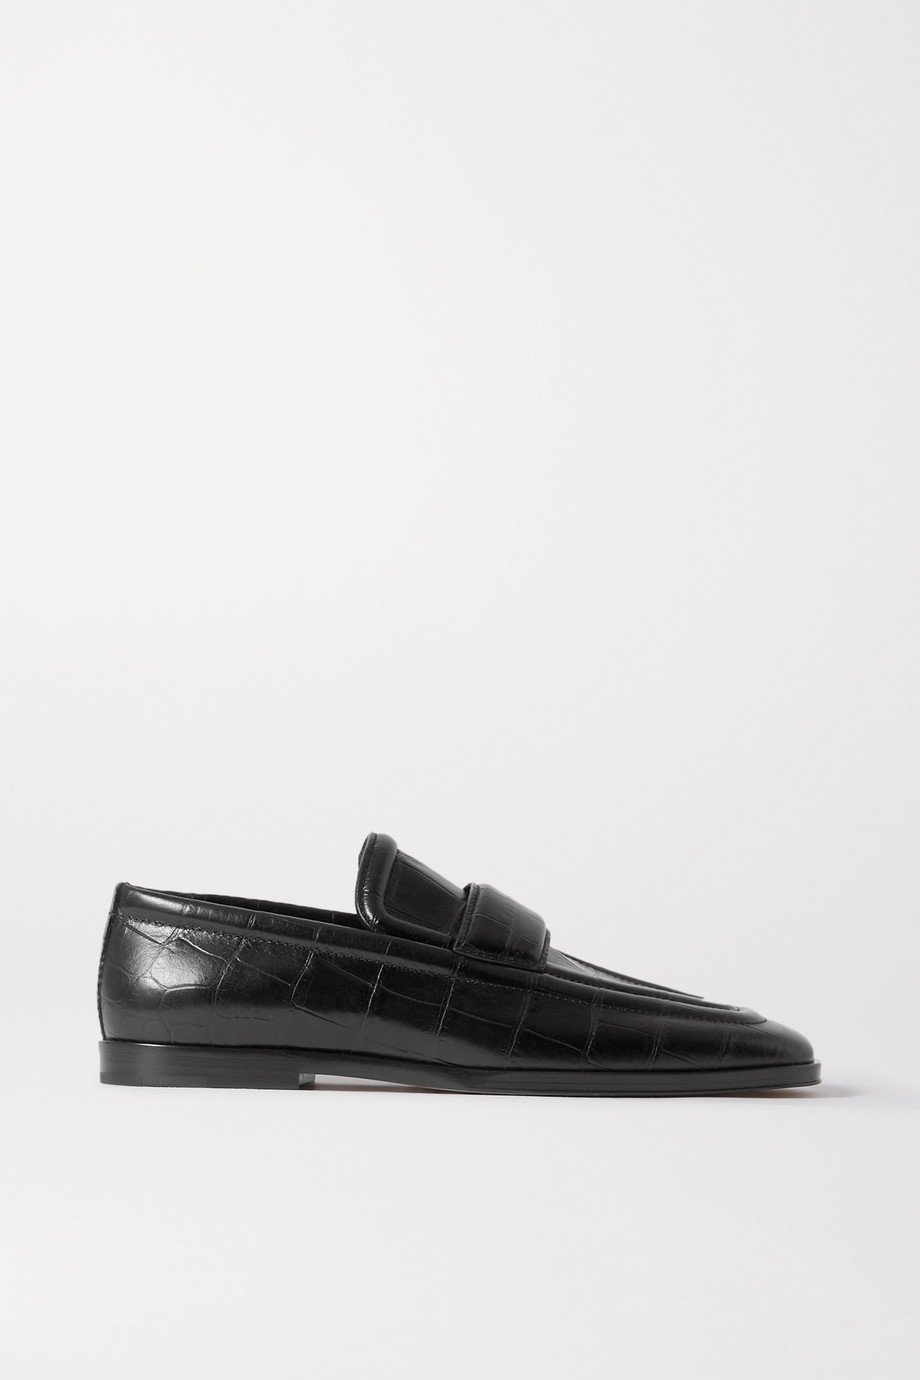 Bottega Veneta Croc-effect leather loafers